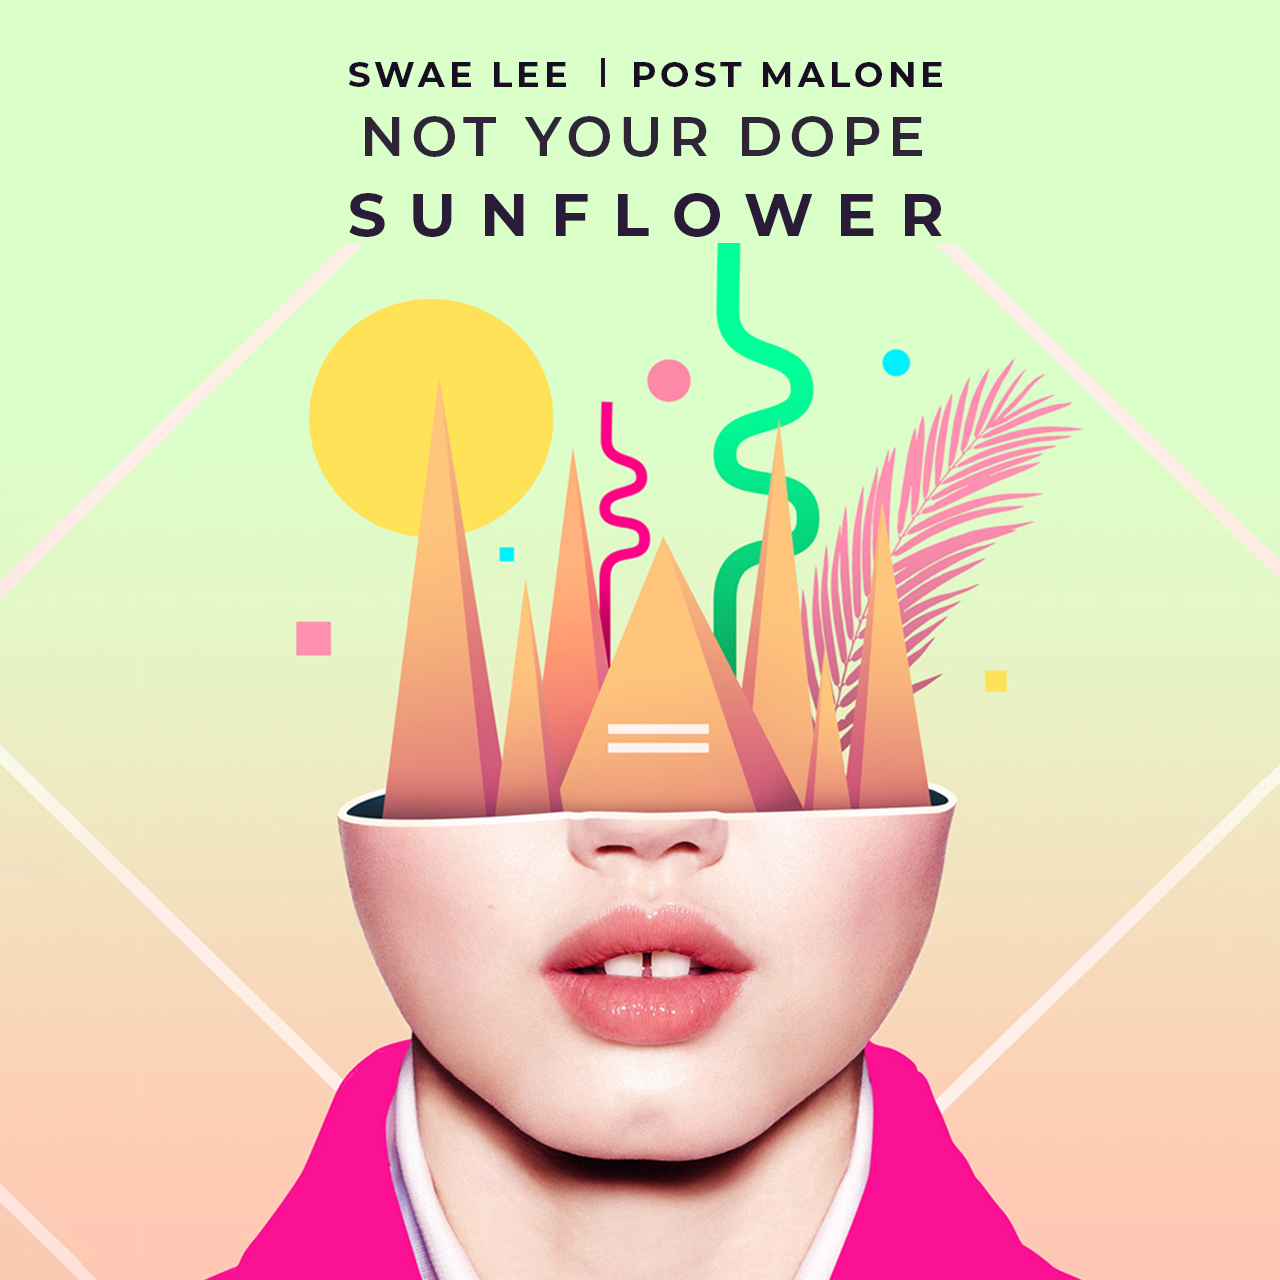 Post Malone Hit This Hard: Sunflower (Not Your Dope Remix) By